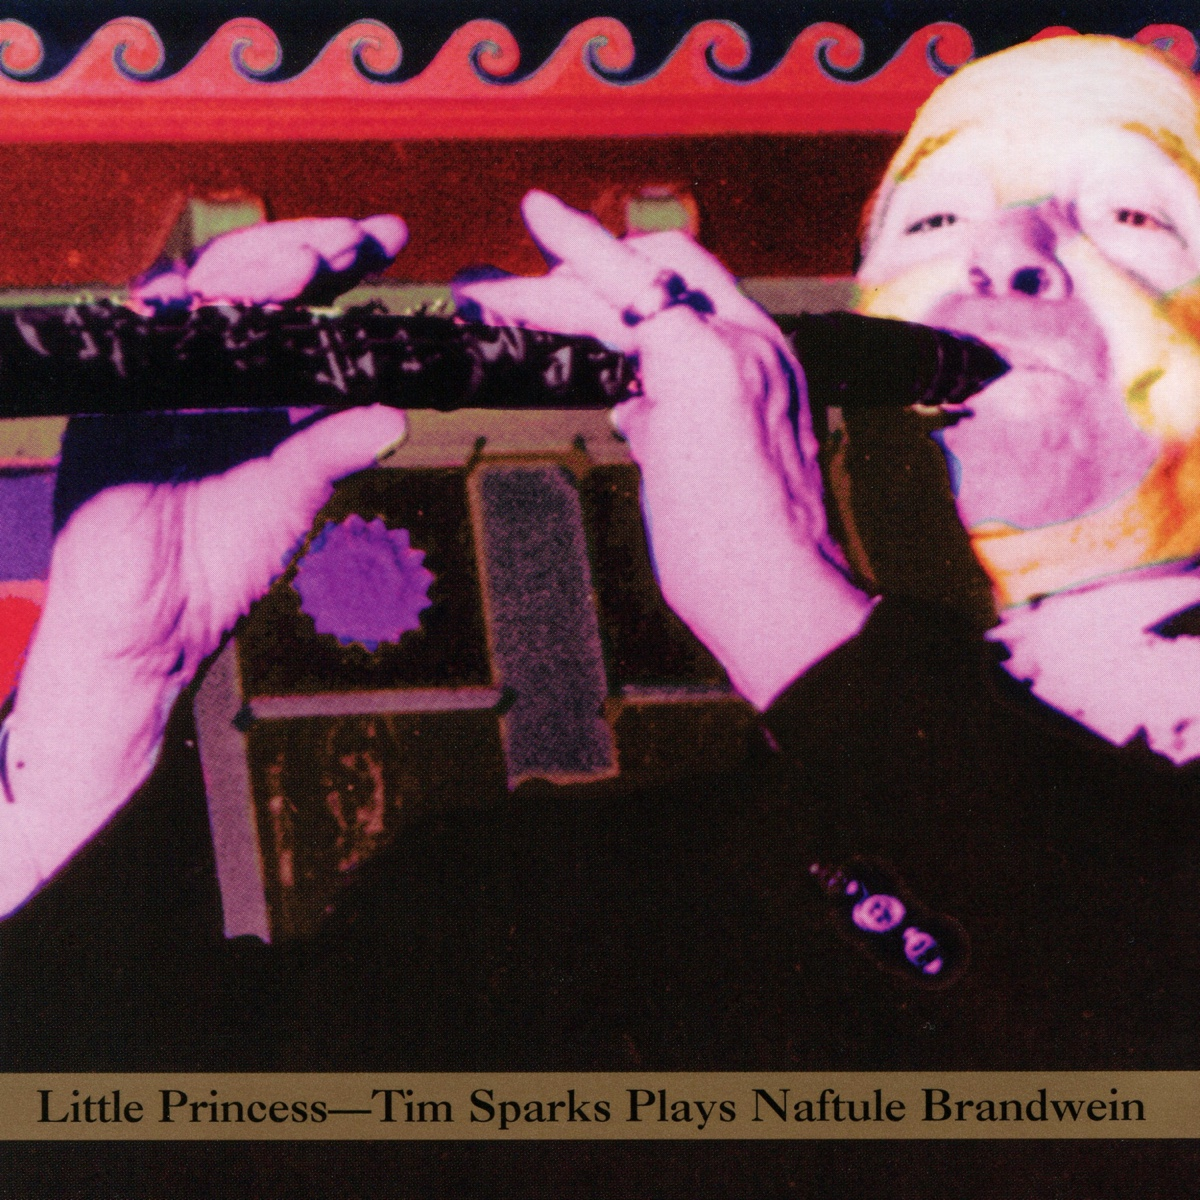 Little Princess - Tim Sparks Plays Naftule Brandwein.jpg